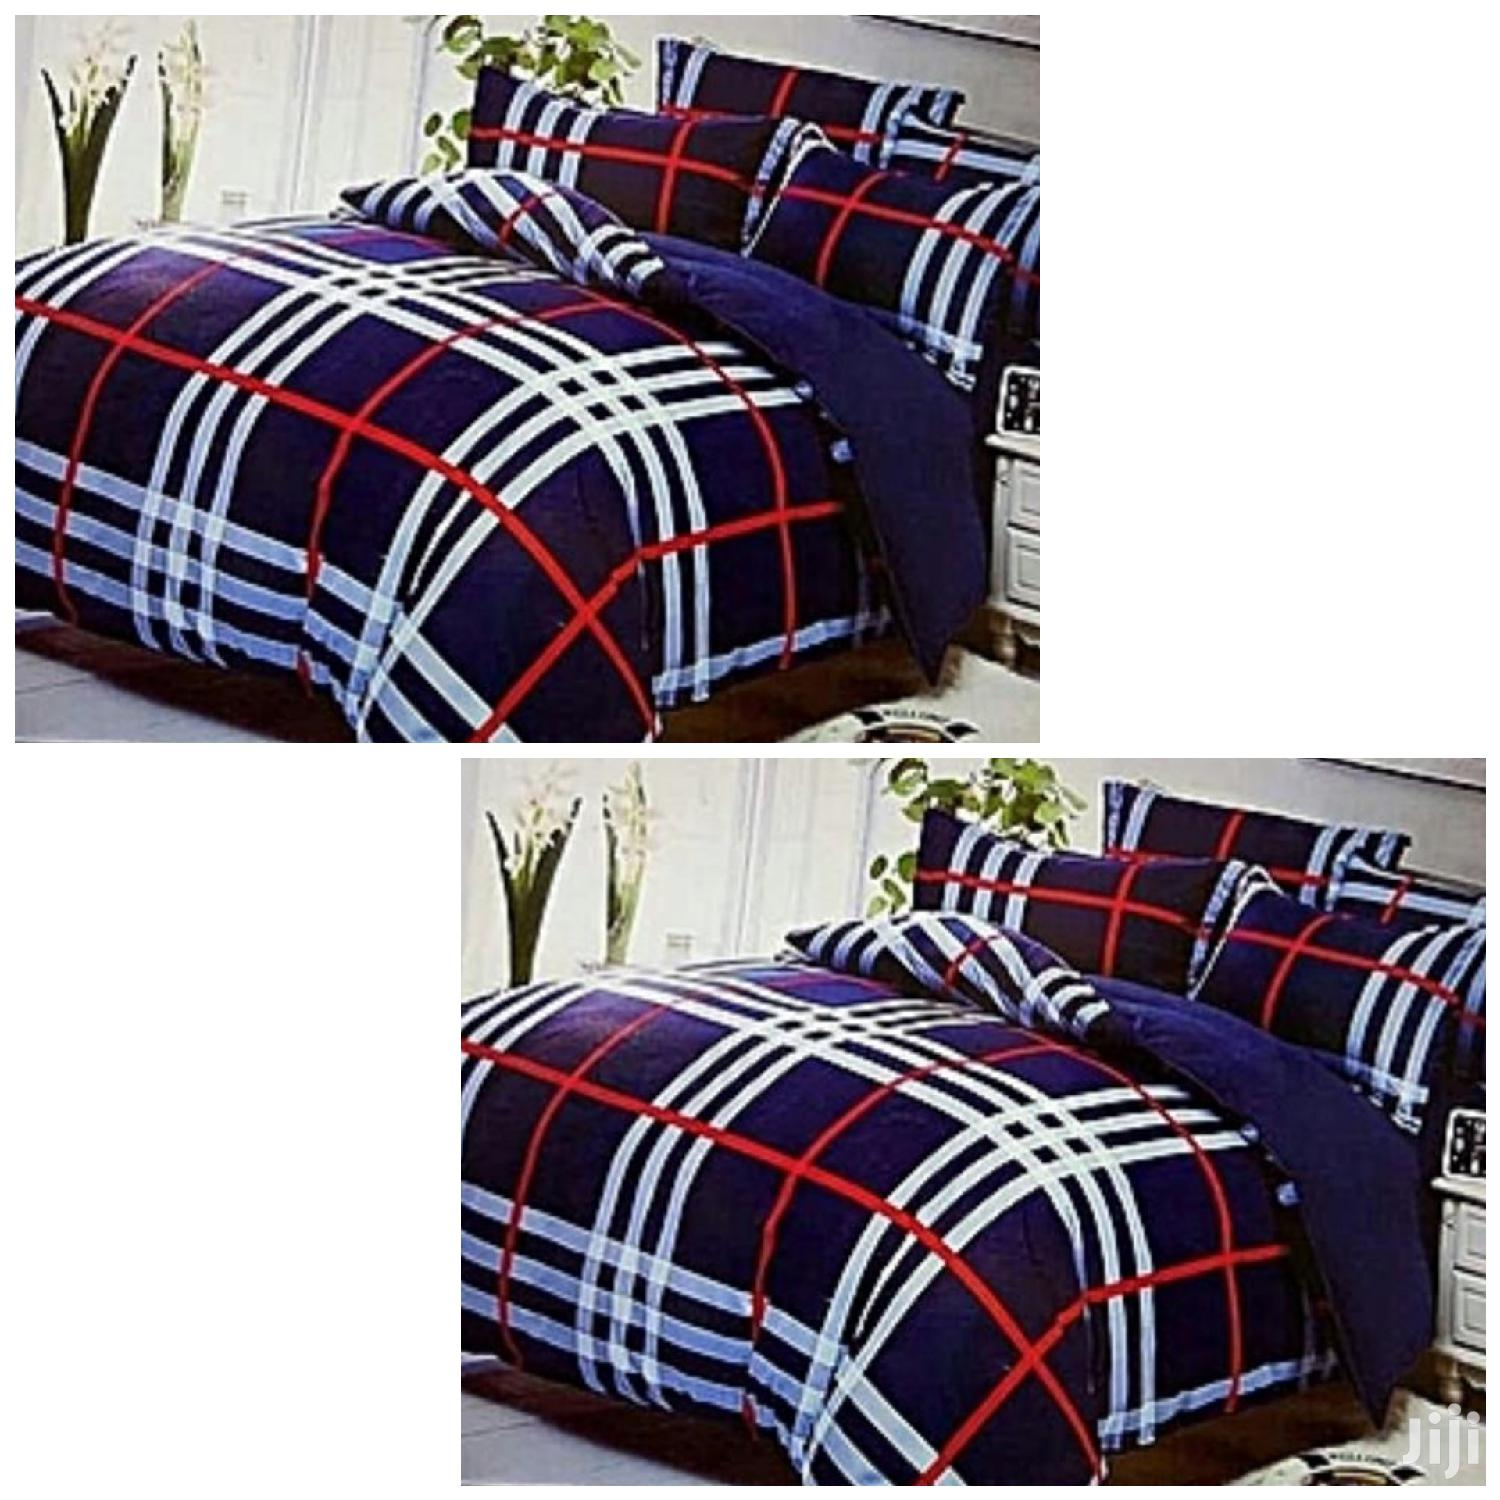 Duvet With Pillow Case And Bedsheet